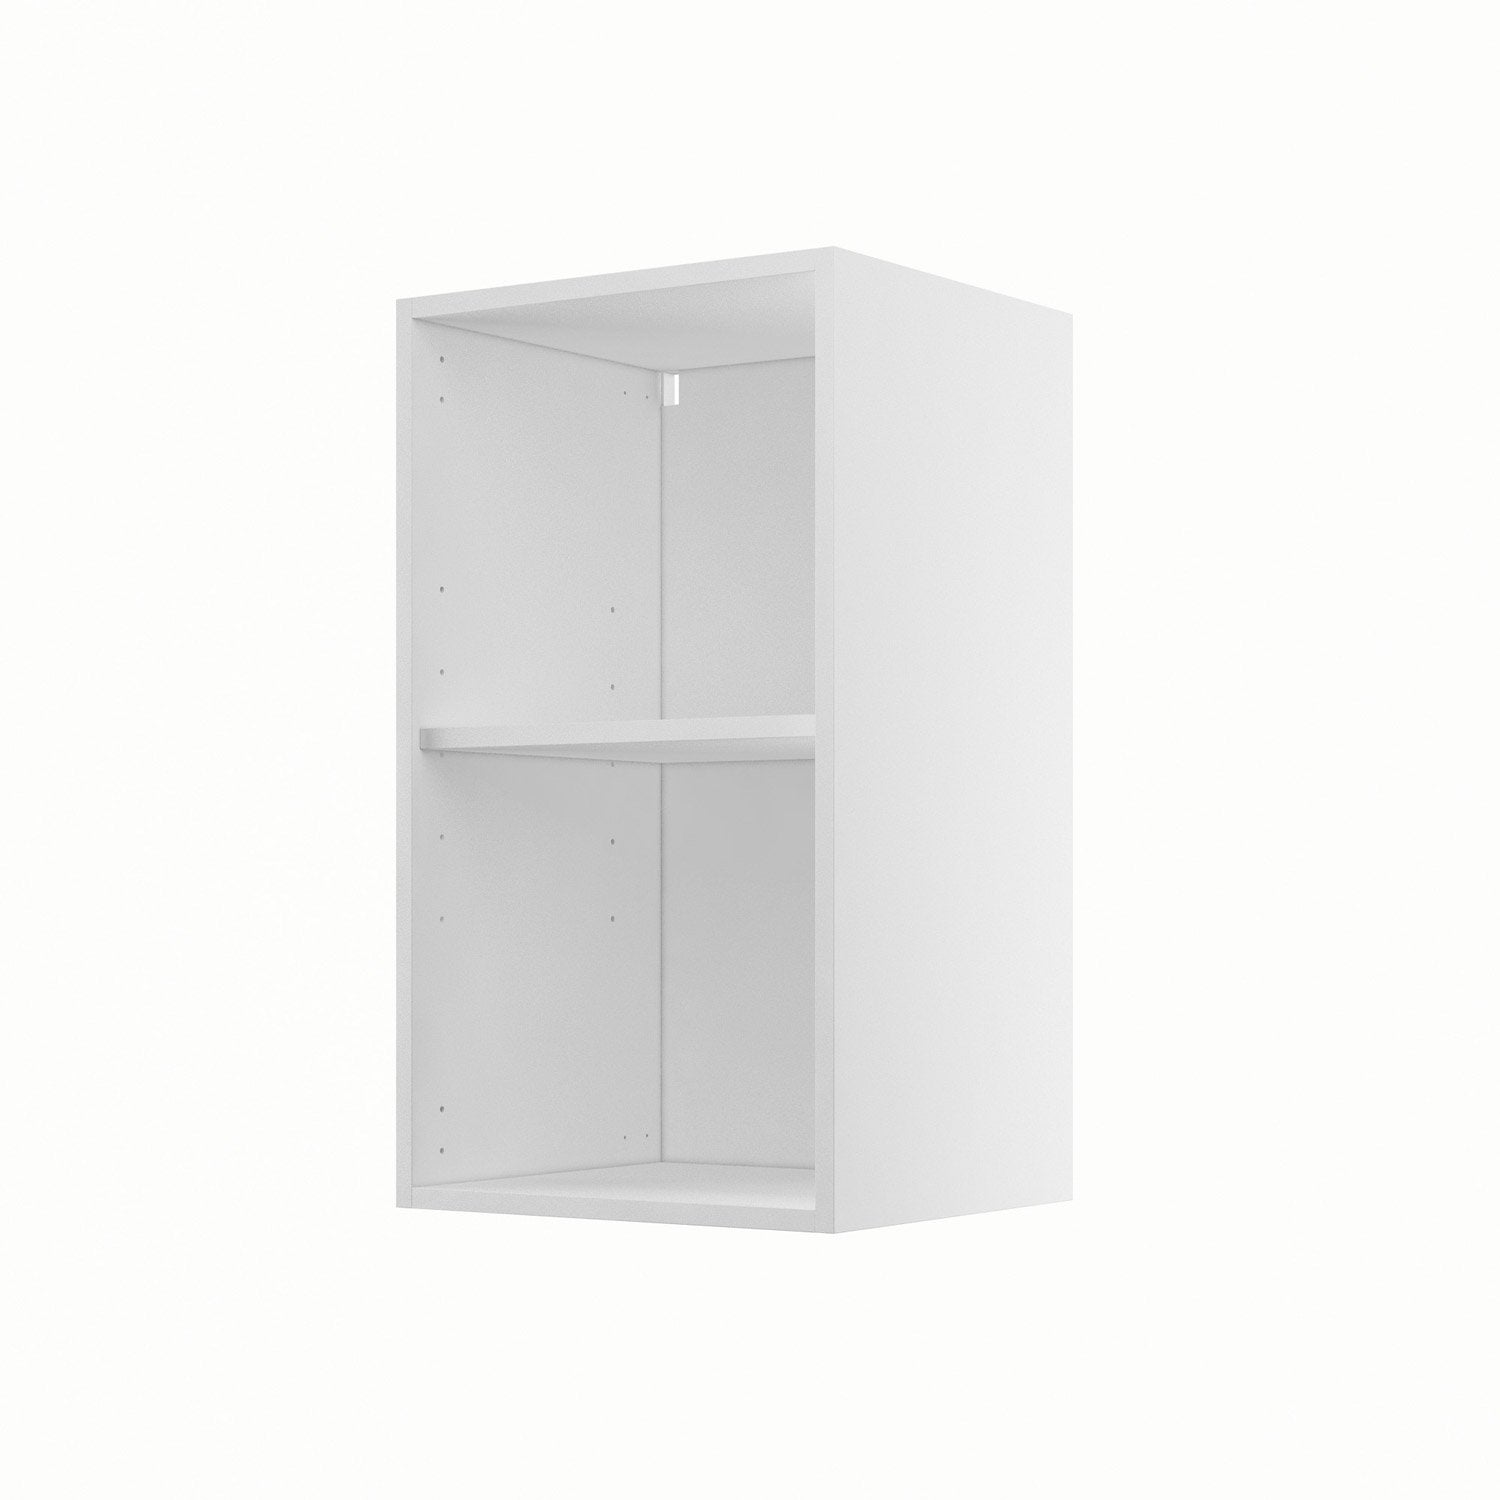 caisson de cuisine haut h40 70 delinia blanc l40 x h70 x p35 cm leroy merlin. Black Bedroom Furniture Sets. Home Design Ideas